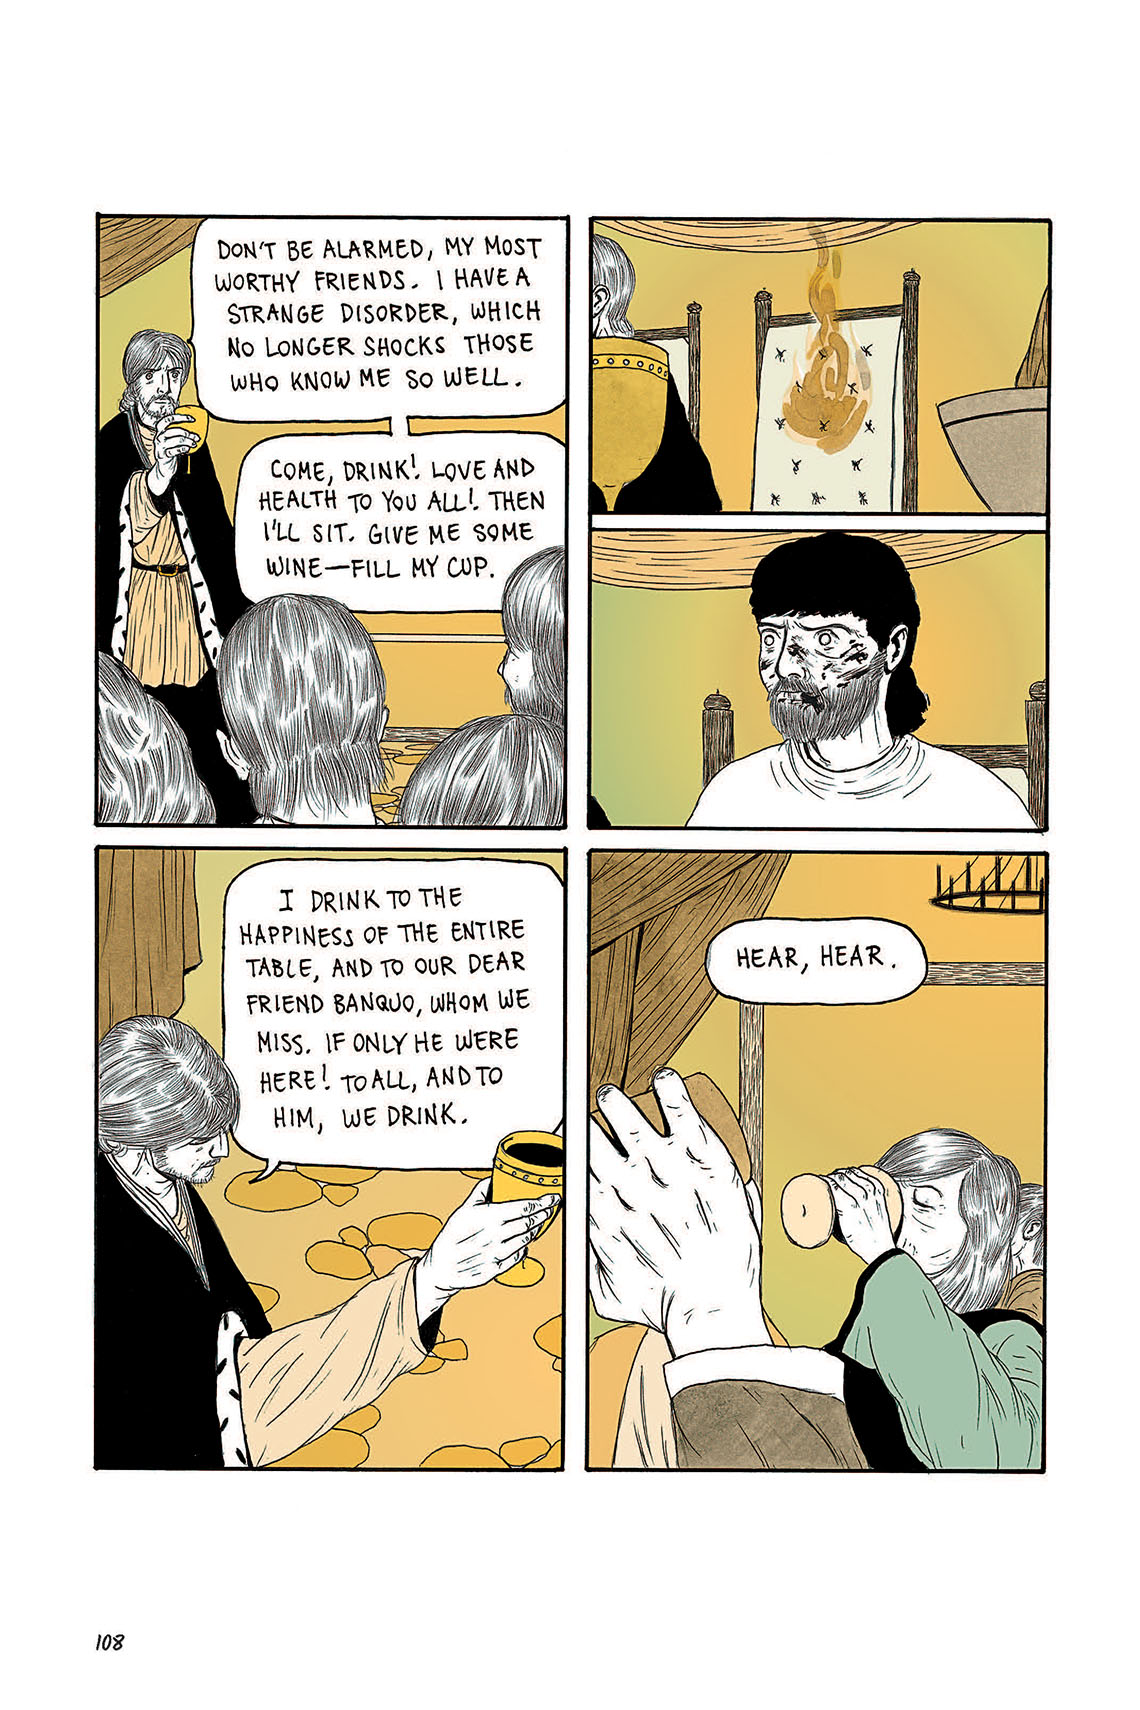 Macbeth Act 3 Scene 4 Page 108 Graphic Novel Sparknotes Sparknote 6